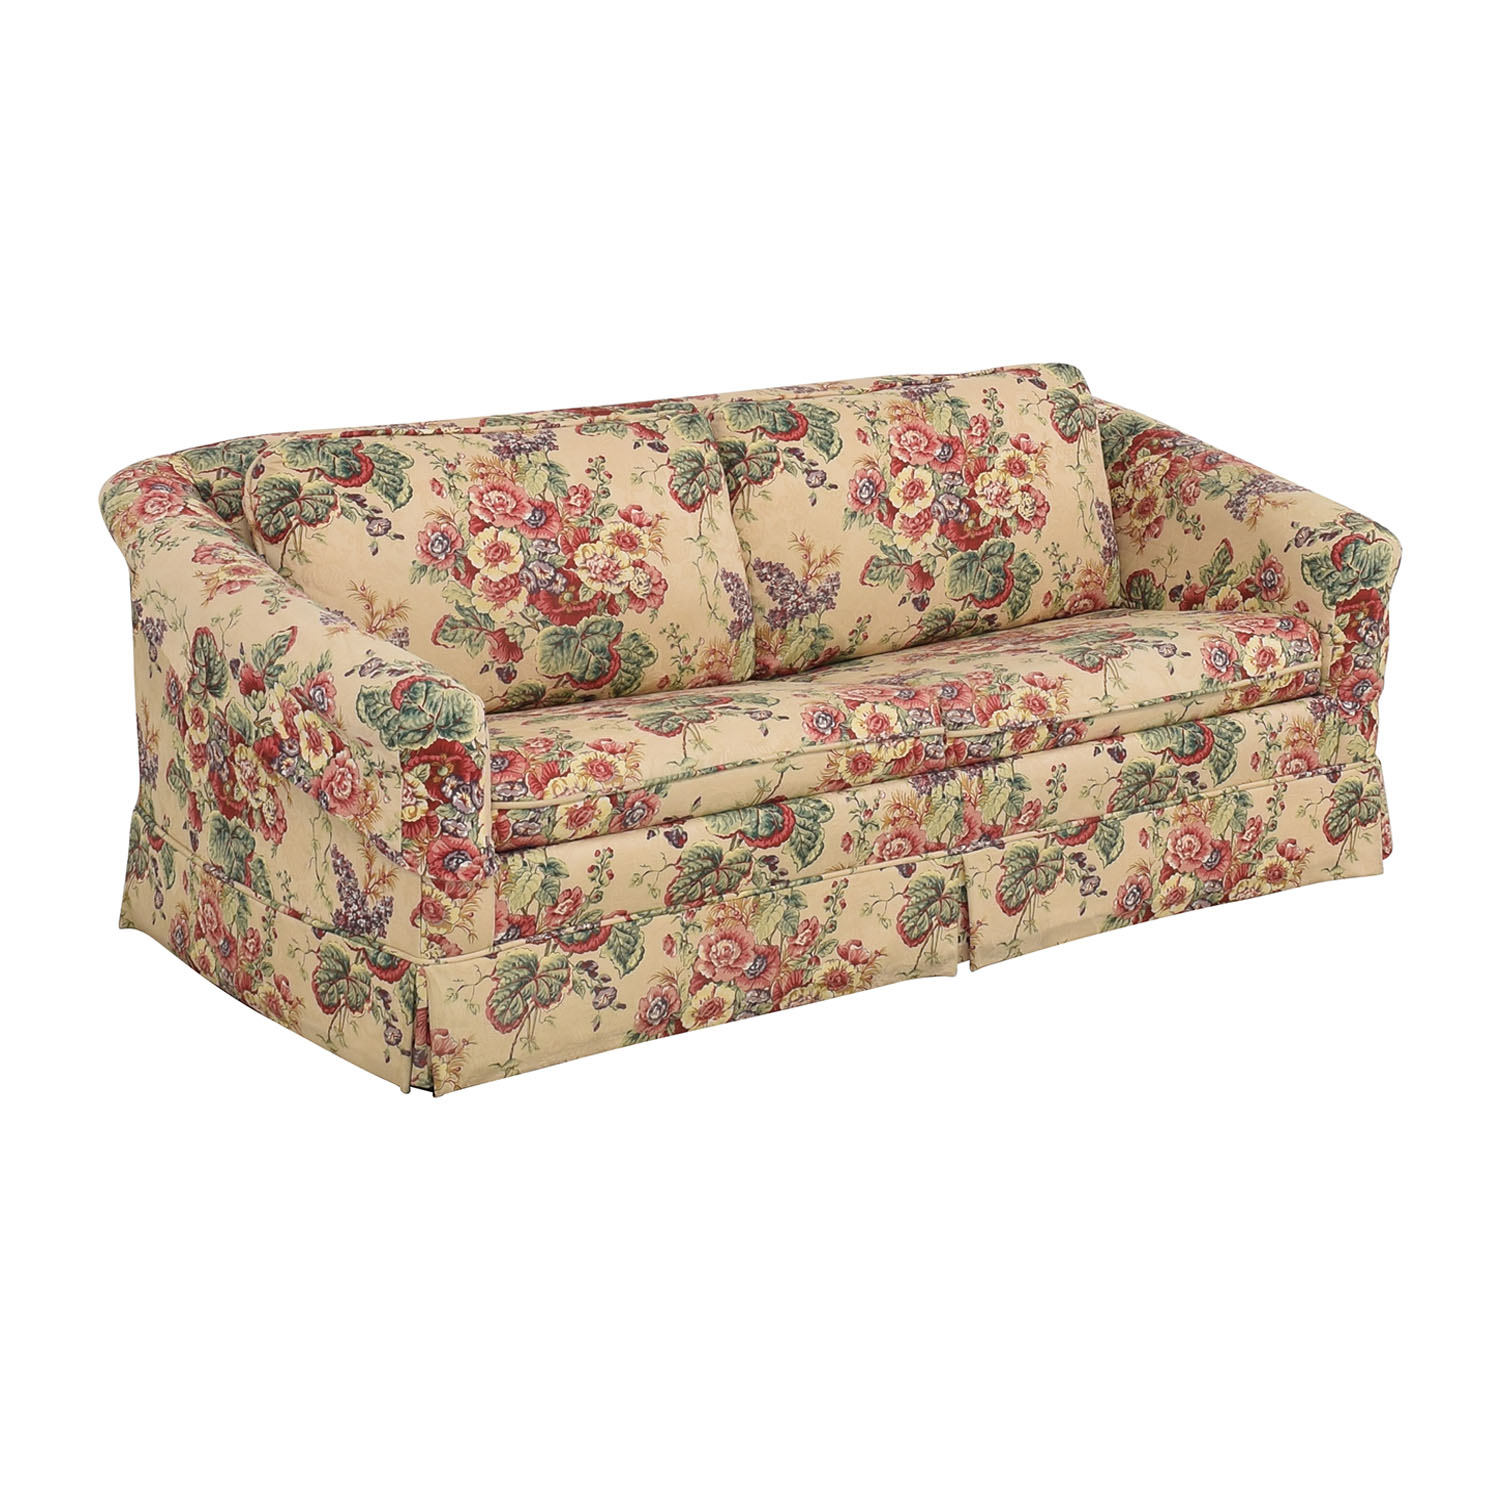 Castro Convertibles Full Floral Sofa Bed sale